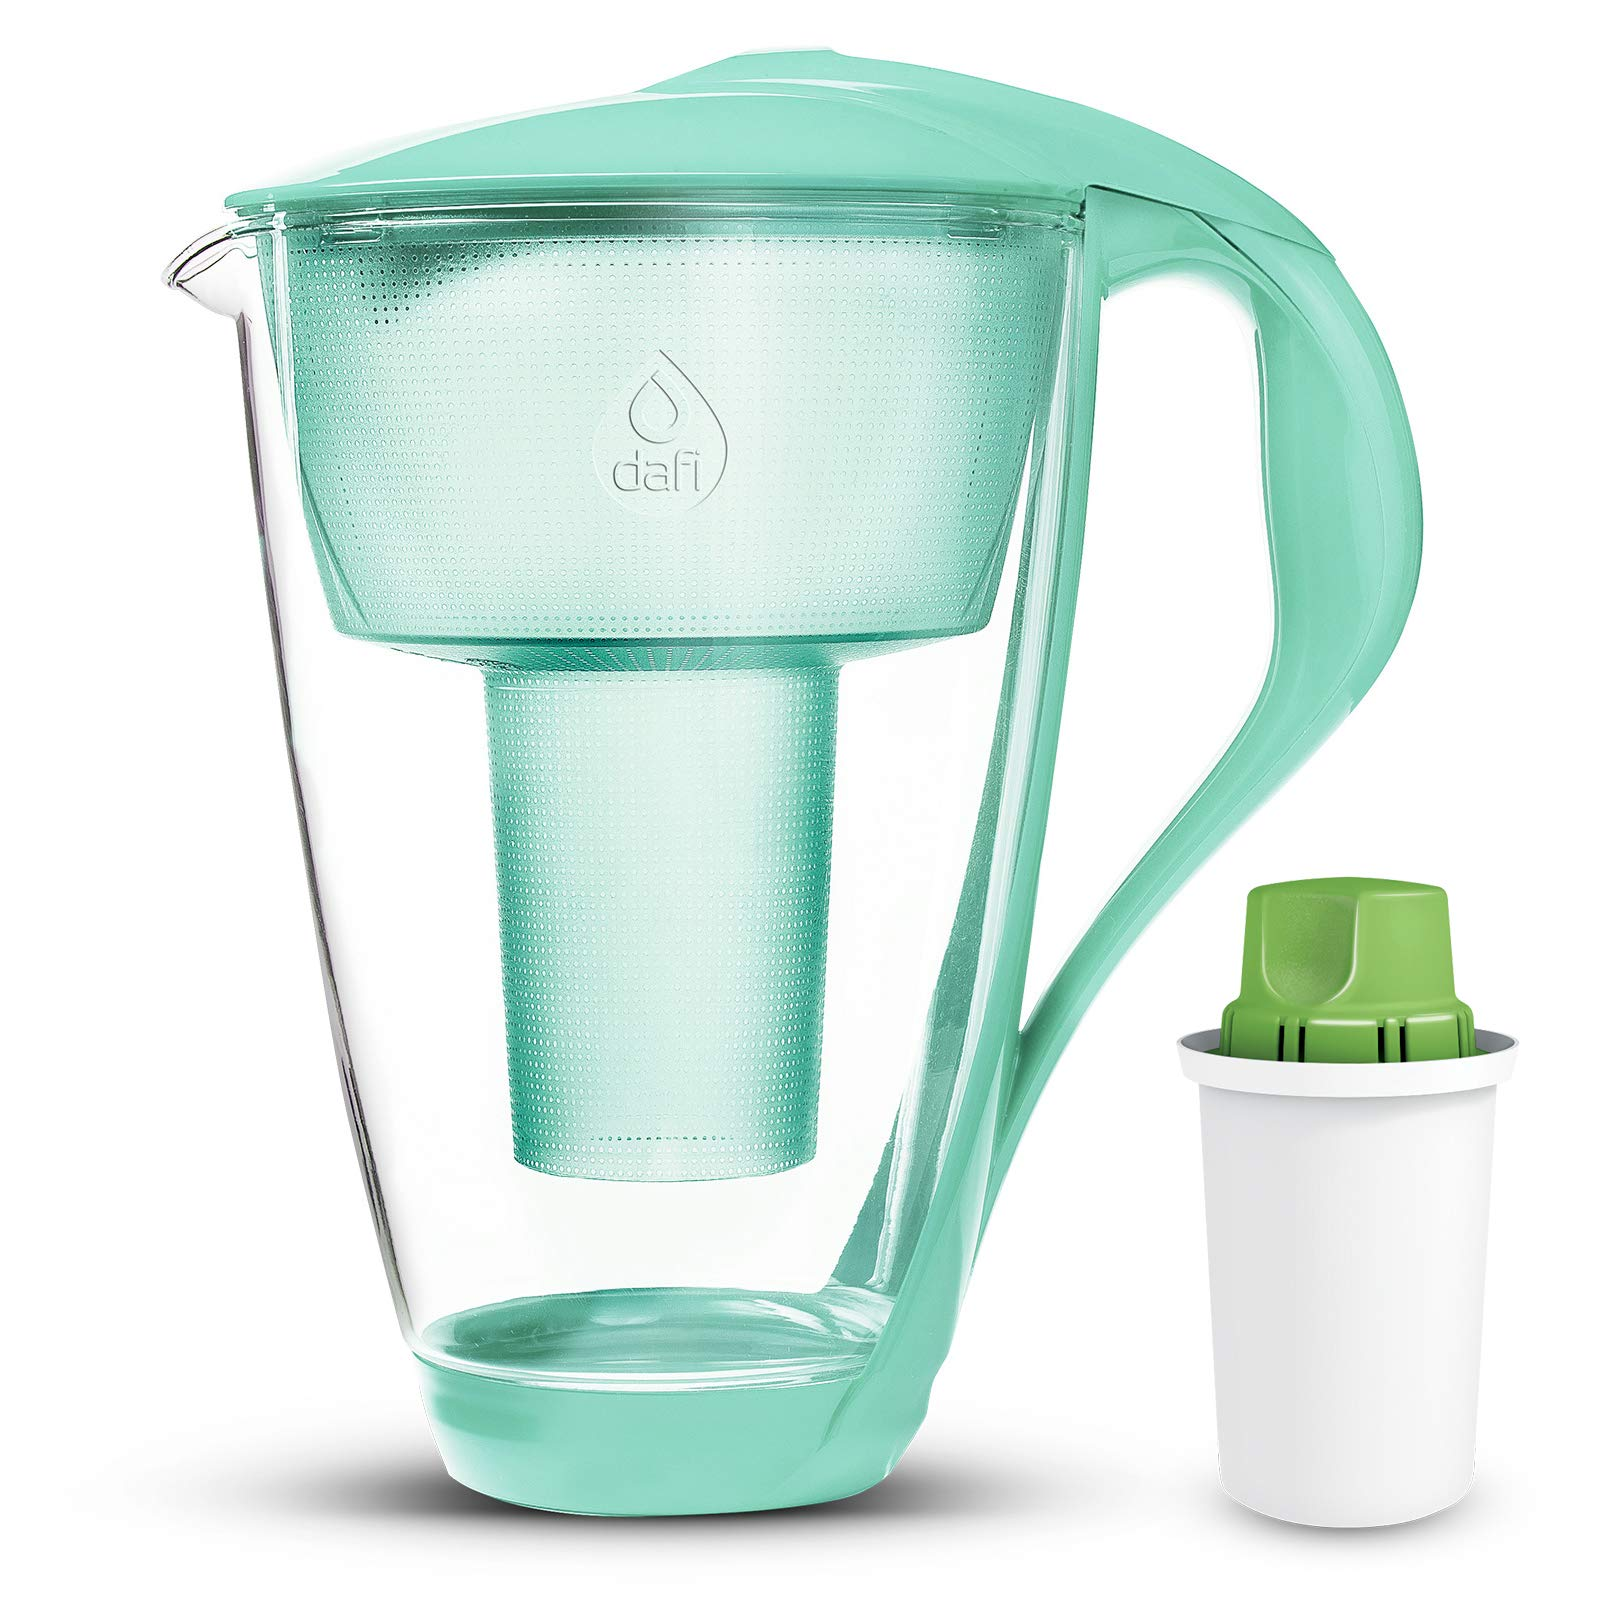 Dafi Alkaline UP Crystal Glass Water Pitcher 8 cups (Mint - Crystal Alkaline Water Pitcher with 1 Alkaline UP pH Water Filter)